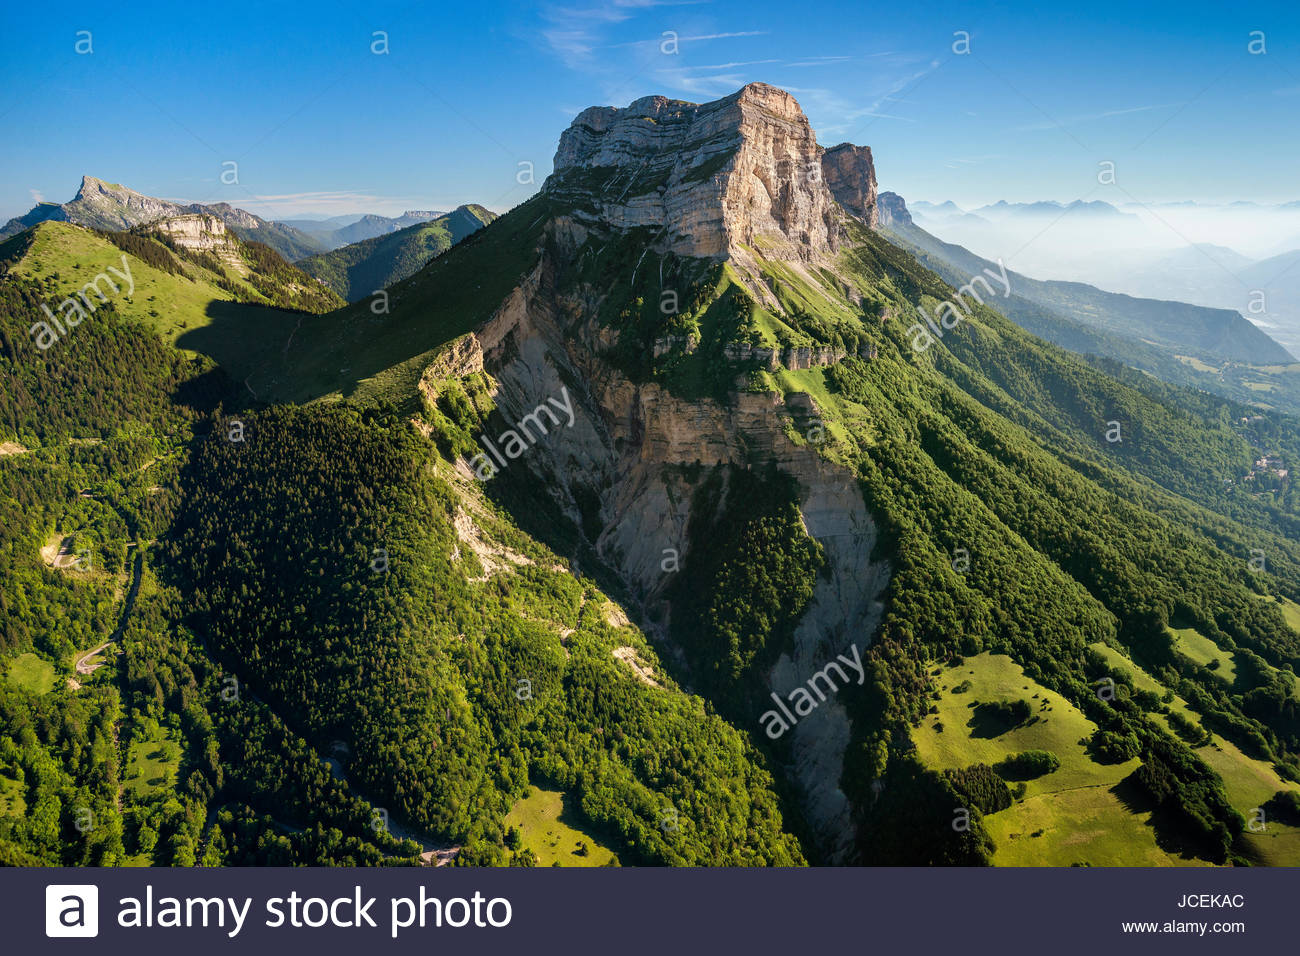 Aerial view of the Dent de Crolles mountain and the Petites Roches plateau (Chartreuse mountain range) near Grenoble - Stock Image